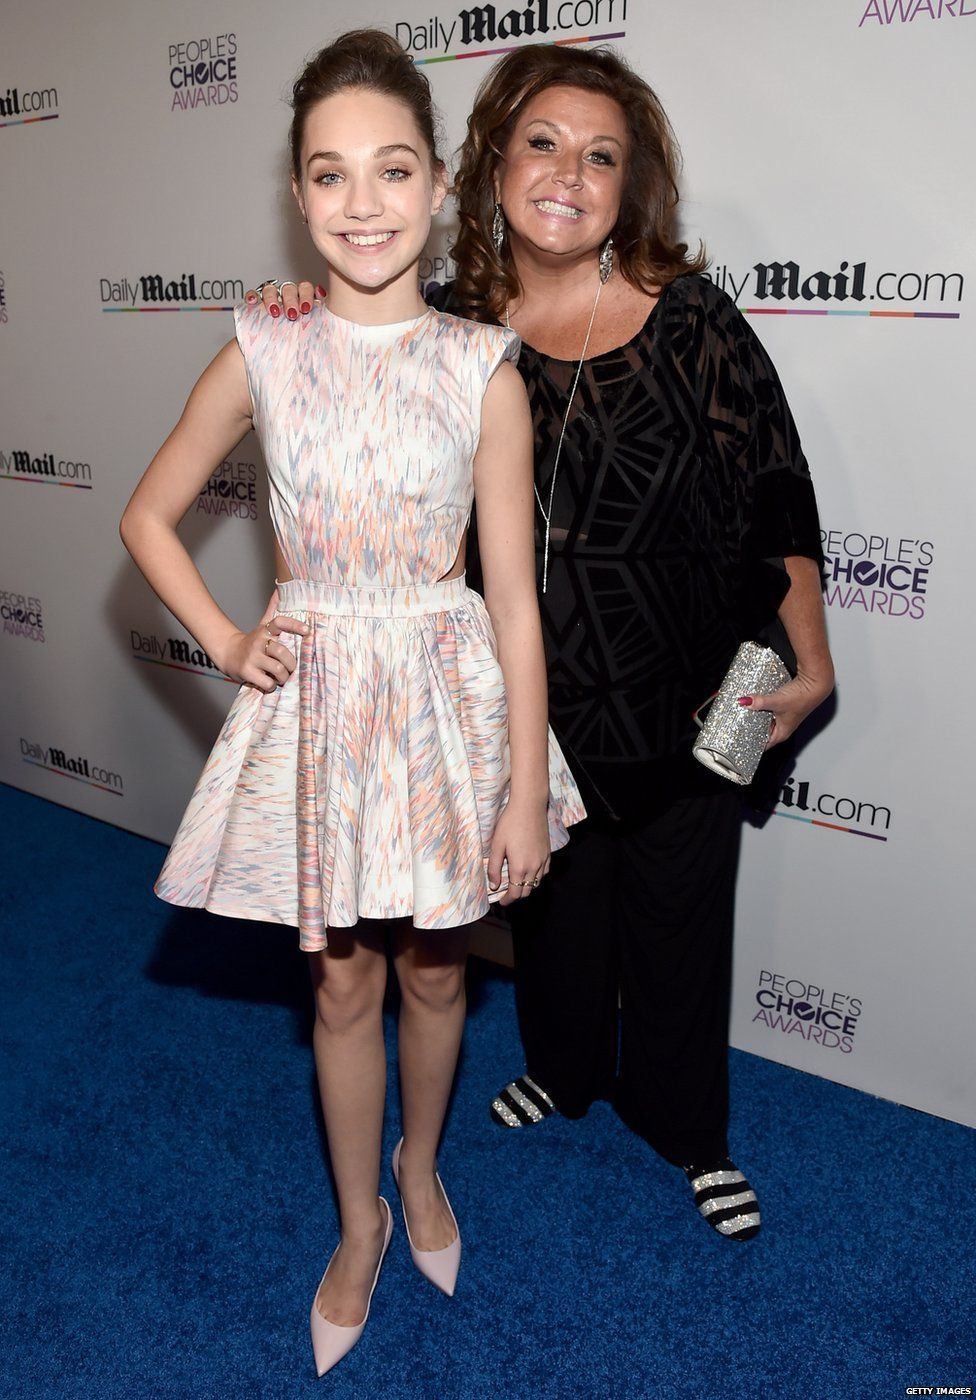 Maddie Ziegler and Abby Lee Miller